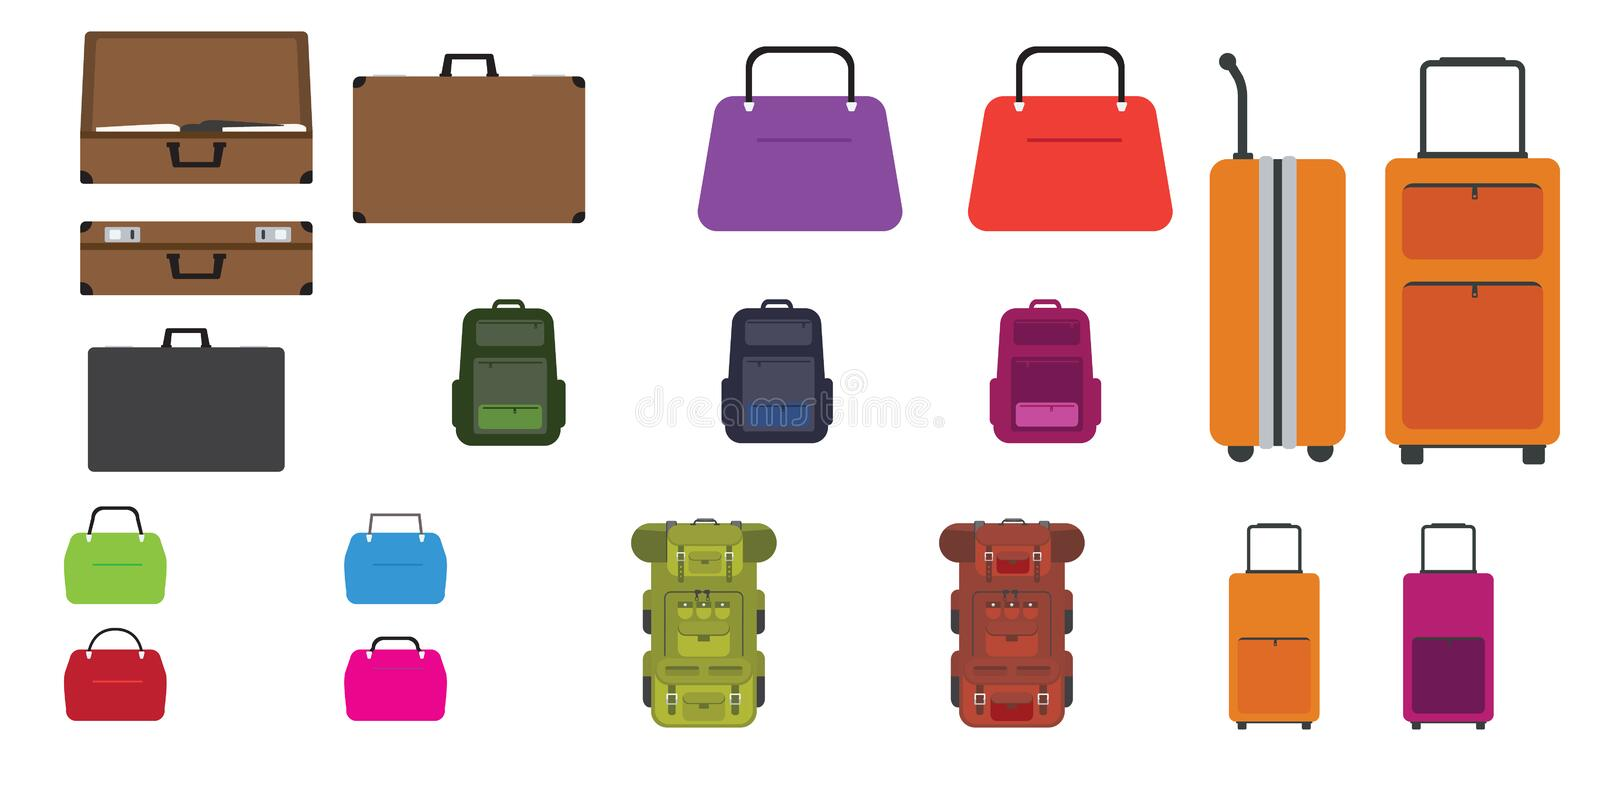 Set of bags. Travel bag, rucksack, woman bag and other bags with Flat design style. Vector illustration. royalty free illustration